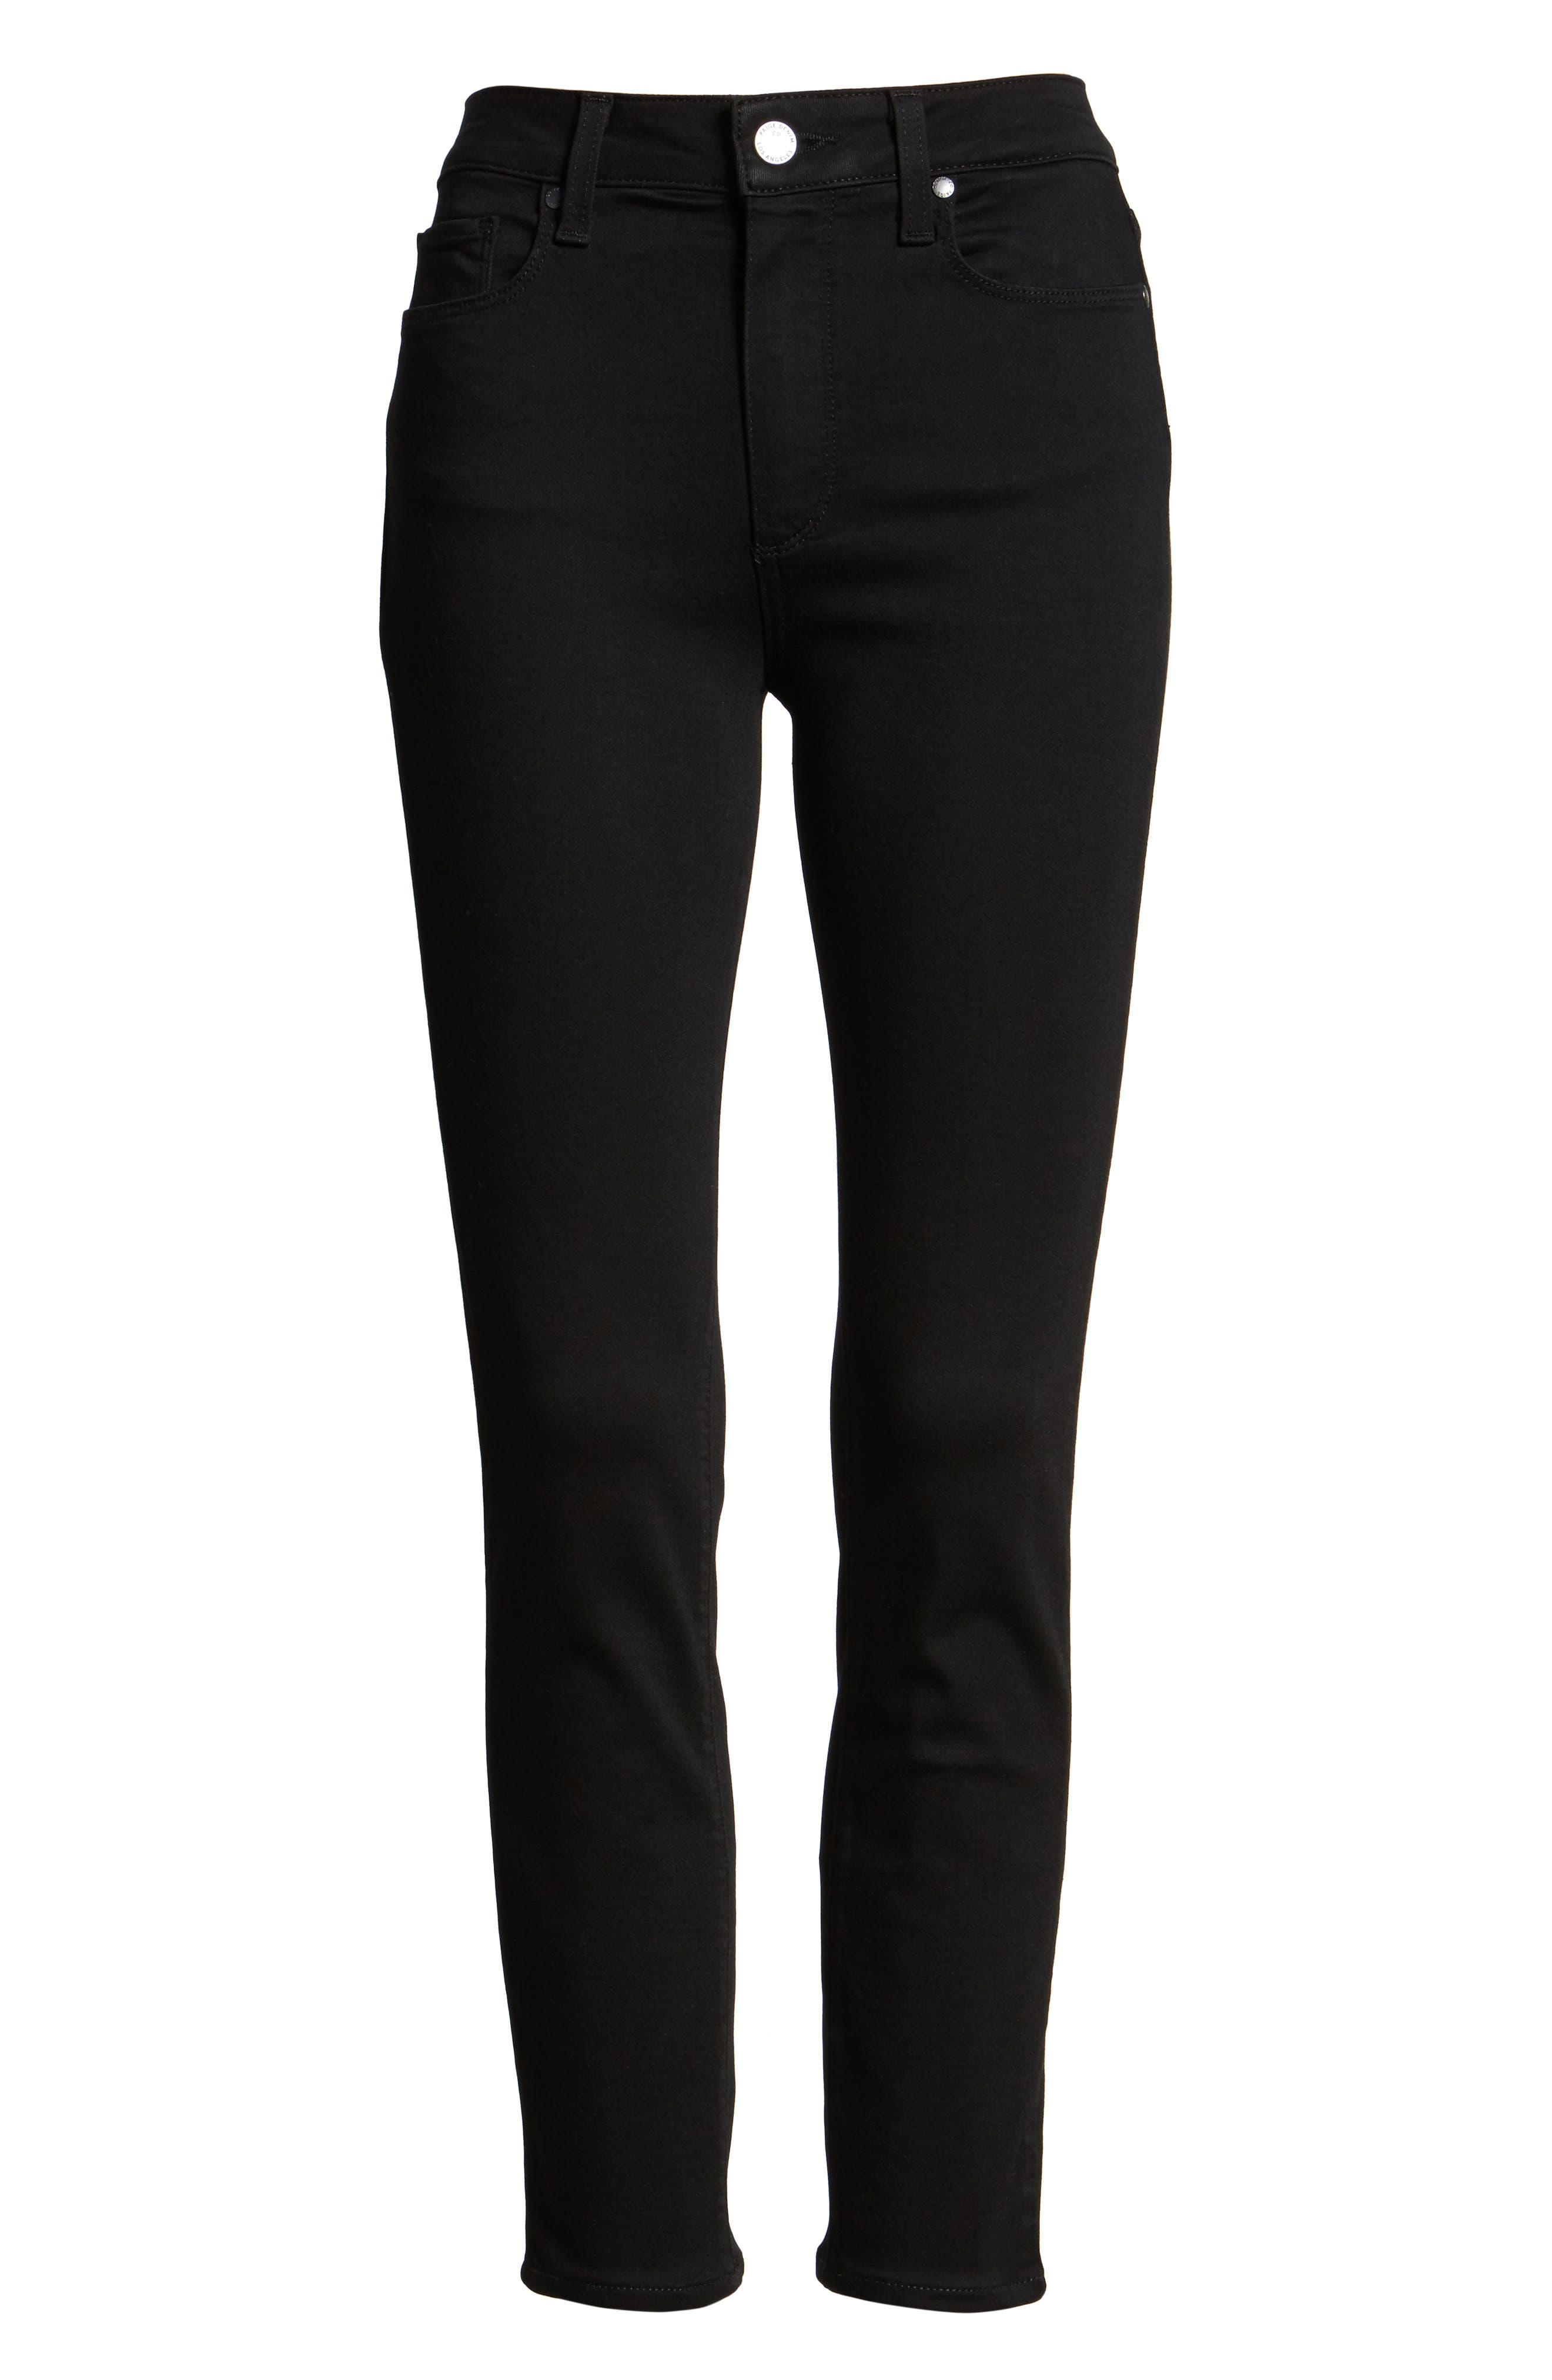 Hoxton Transcend High Waist Crop Skinny Jeans,                             Alternate thumbnail 6, color,                             BLACK SHADOW